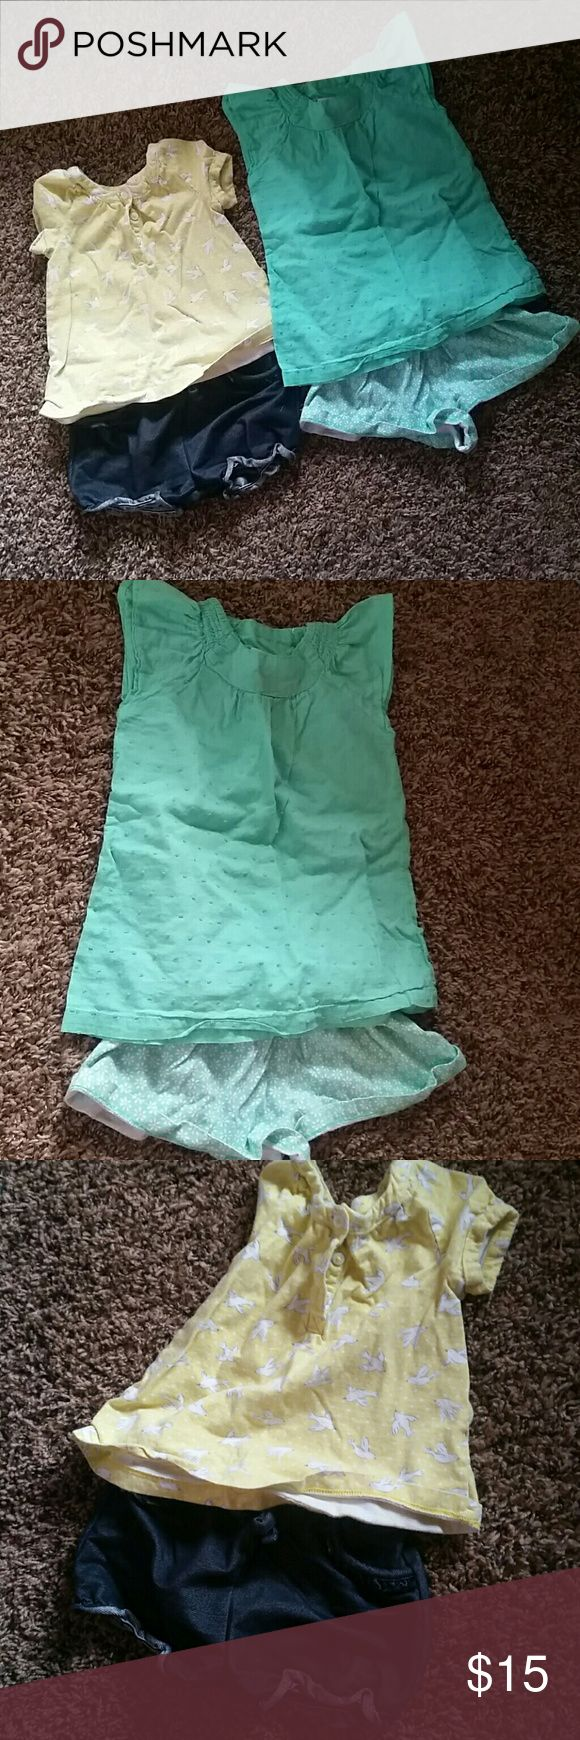 18 month girls summer shorts outfits Carter's Yellow with denim looking shorts top has little birds on it. Kids Korner Mint green shorts outfit Matching Sets